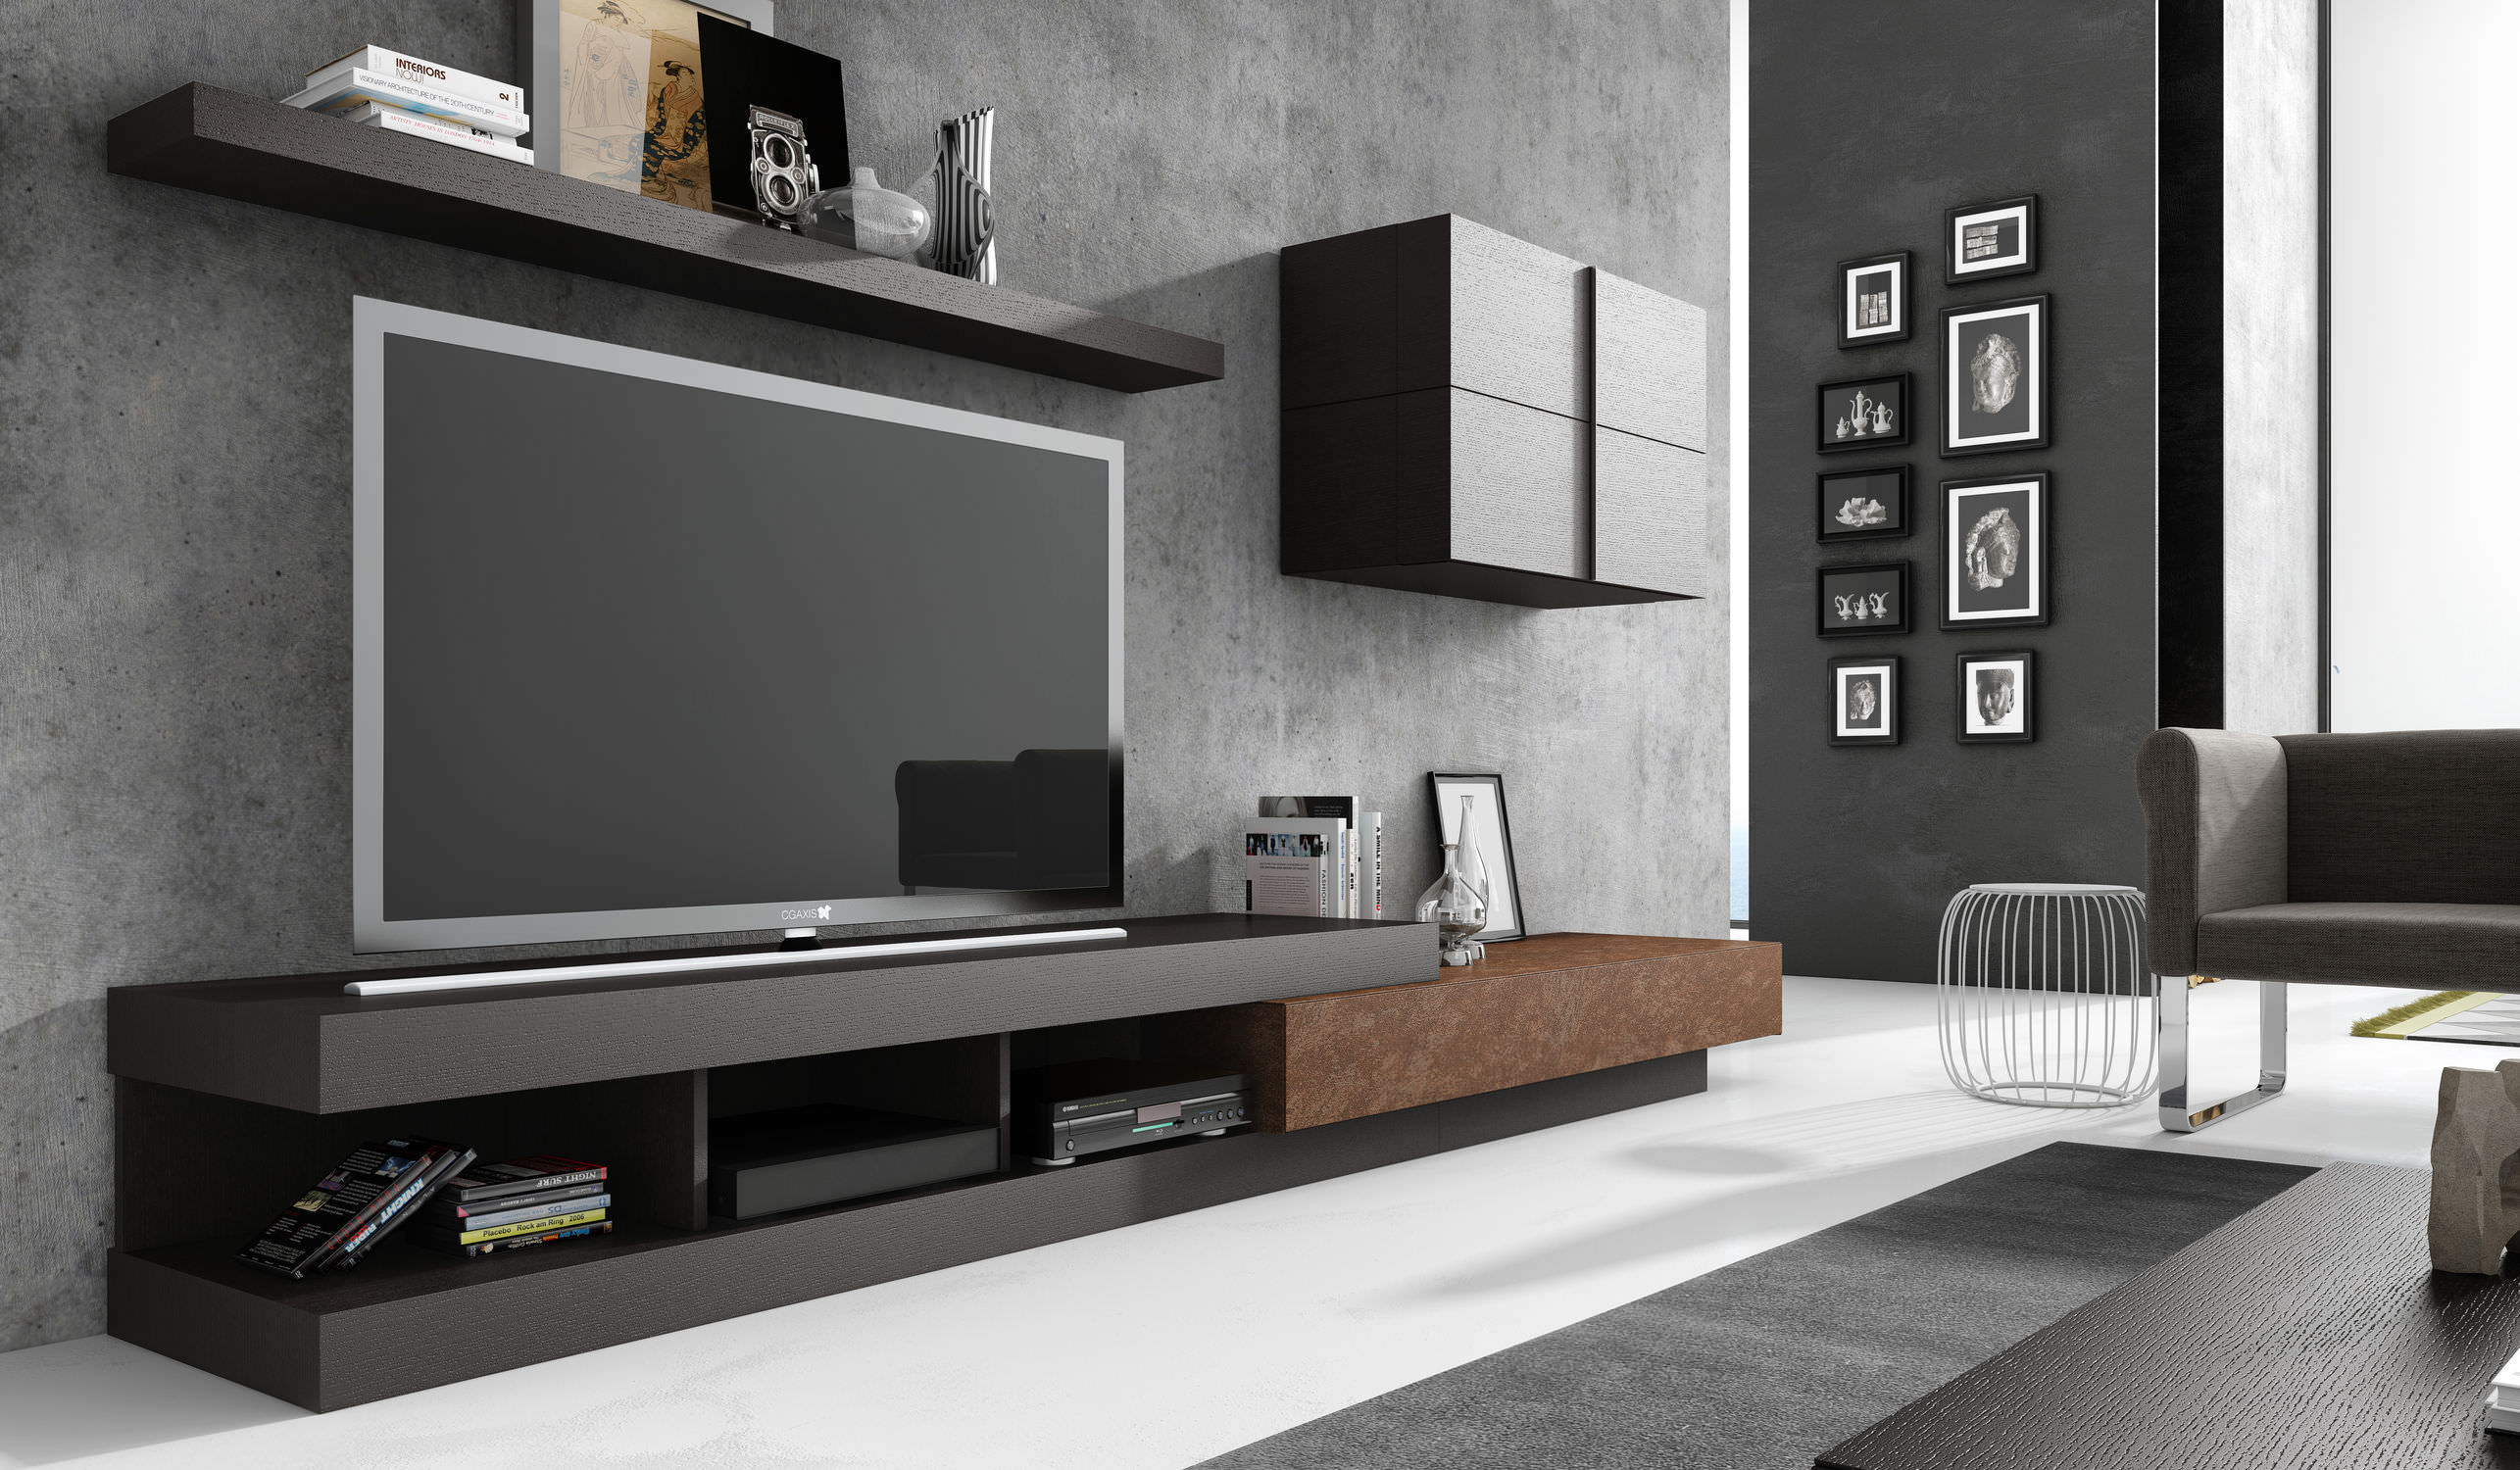 Ensemble Mural Tv Contemporain En Bois Laqu Modulable Ginza  # Meuble Modulable Tv